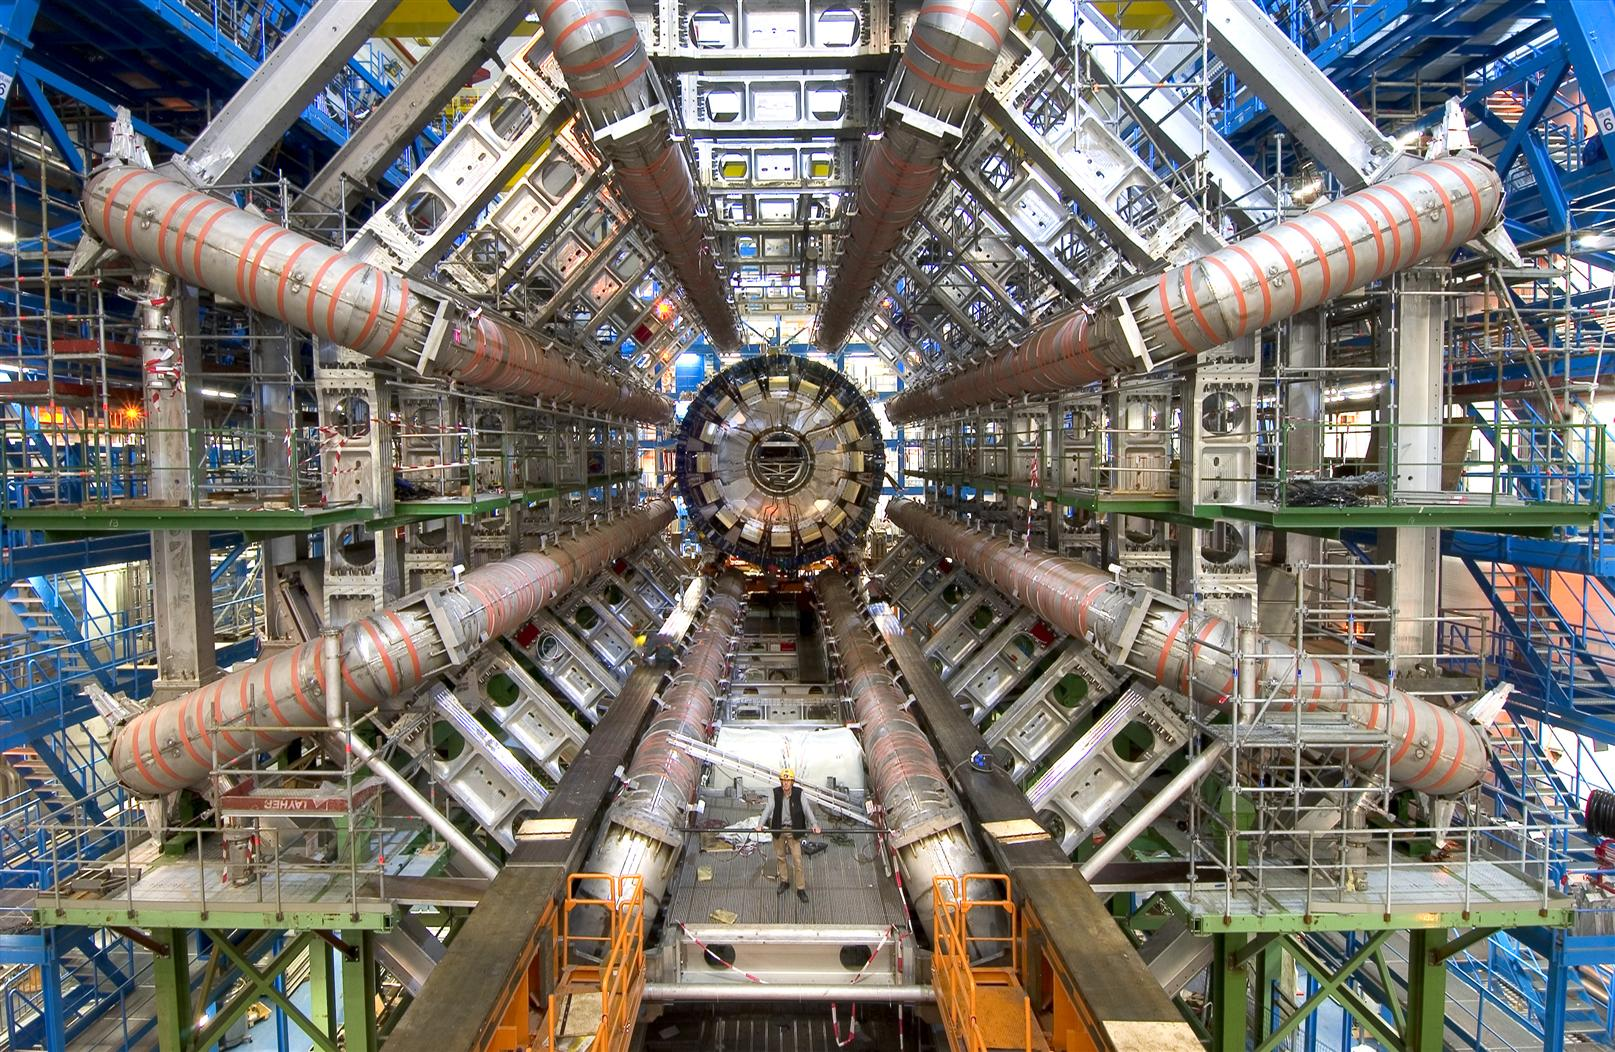 LHC - biggest machines out of top 10